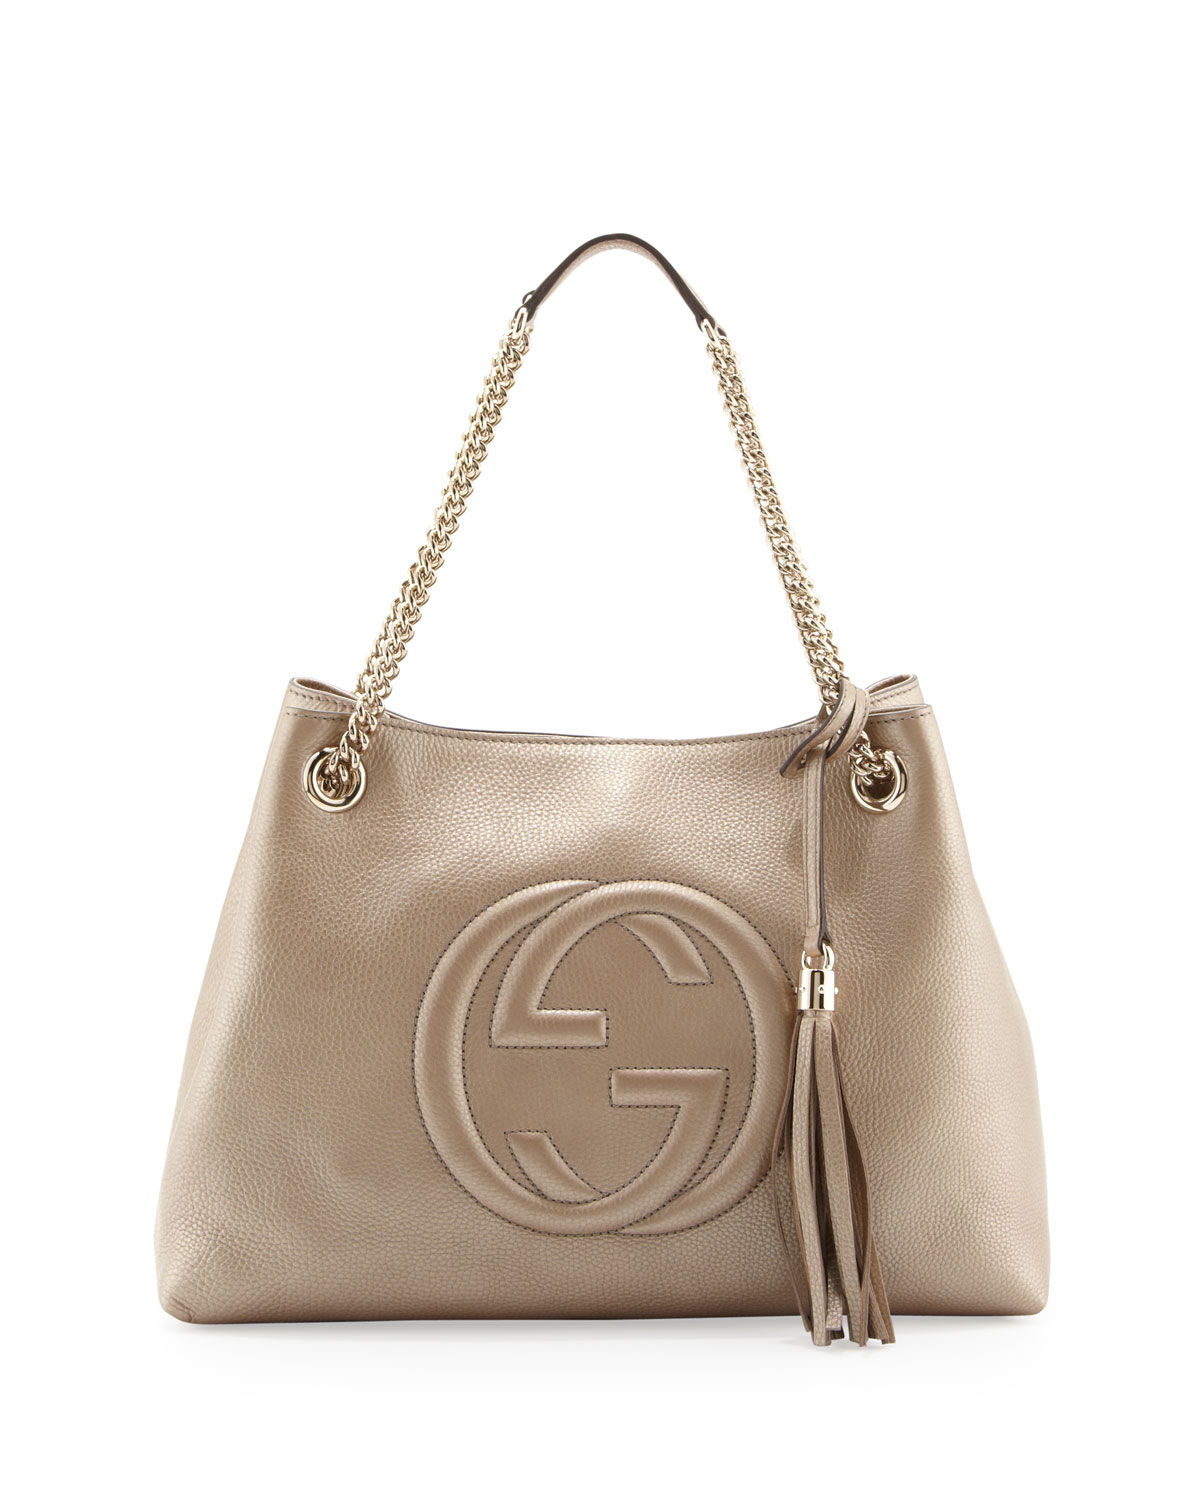 3a8be5673 Gucci Soho Metallic Leather Tote Bag, Golden | Neiman Marcus